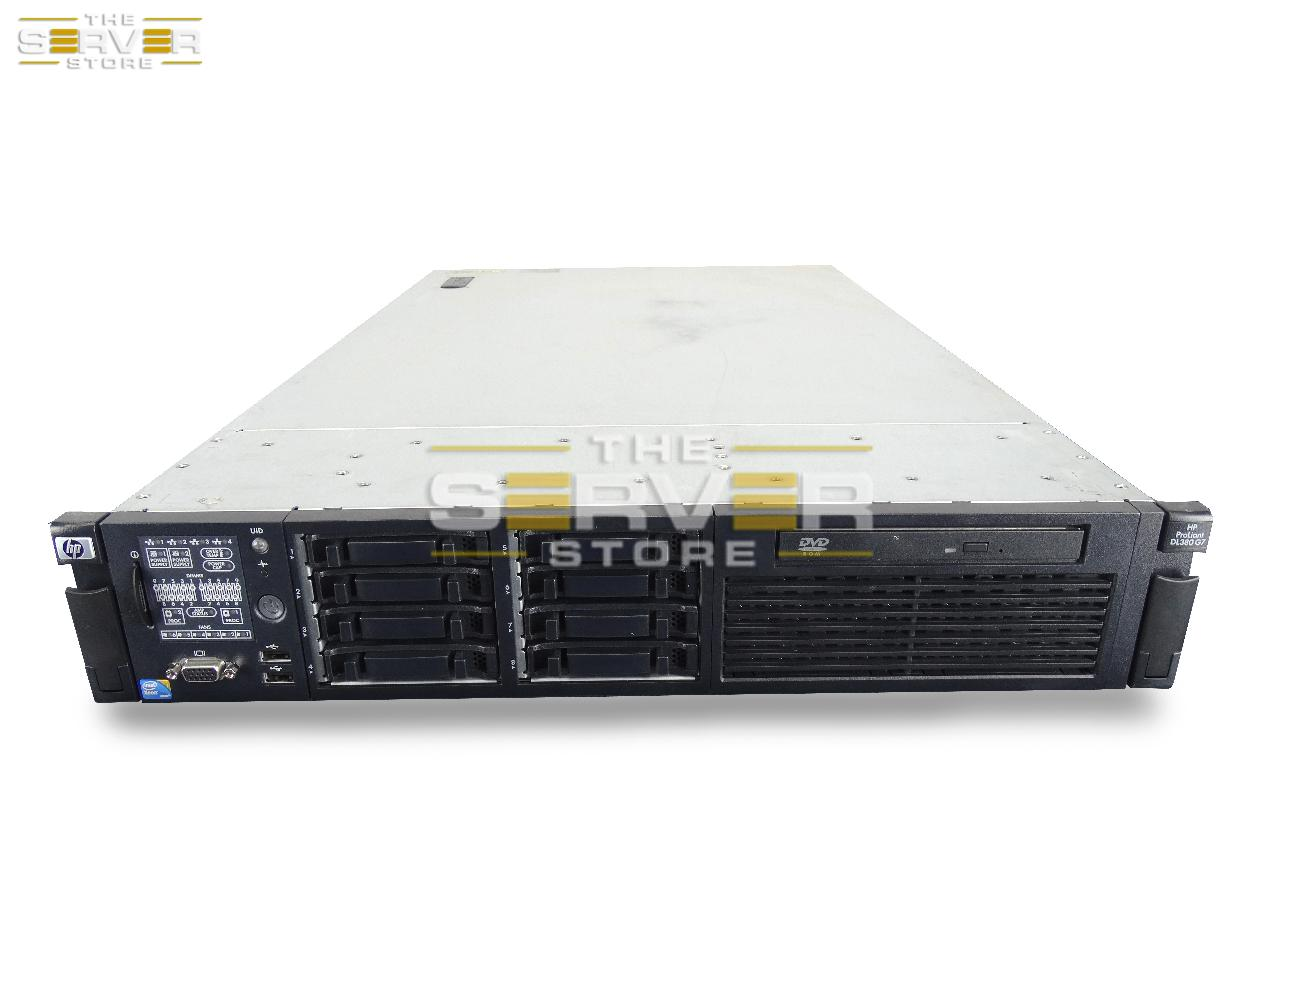 hp dl380 g7 2x e5620 24gb no hard drives p410 array w rails ebay. Black Bedroom Furniture Sets. Home Design Ideas